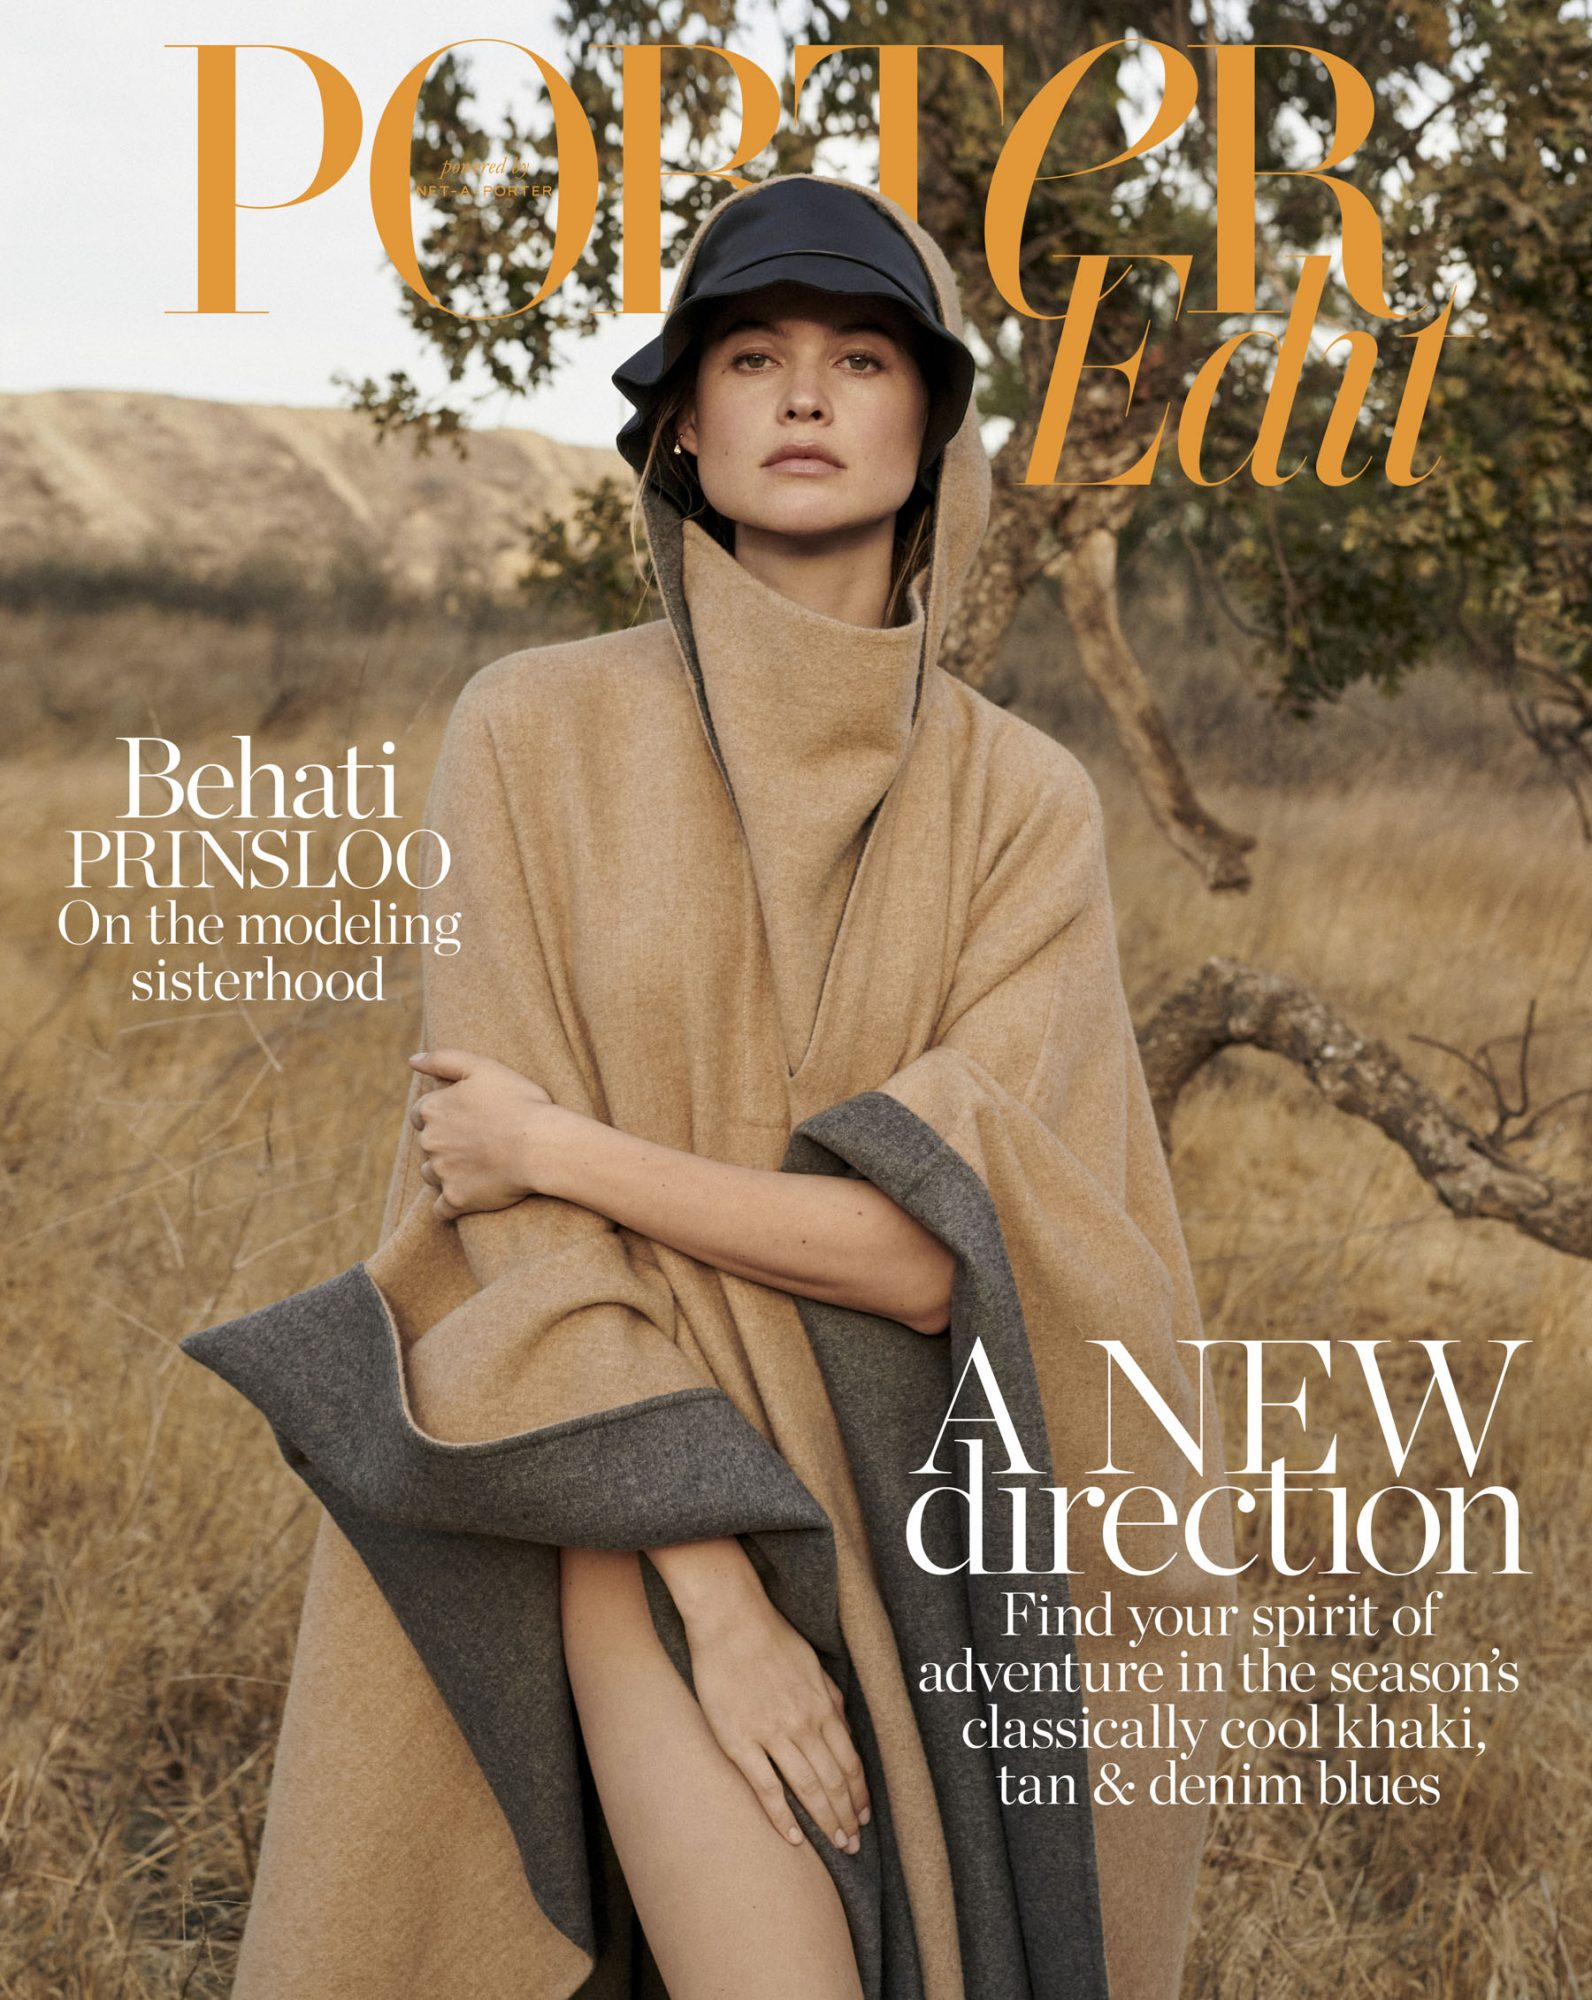 cover_behati prinsloo wears cape givenchy; hat albus lumen. photographed by alexandra nataf for porteredit